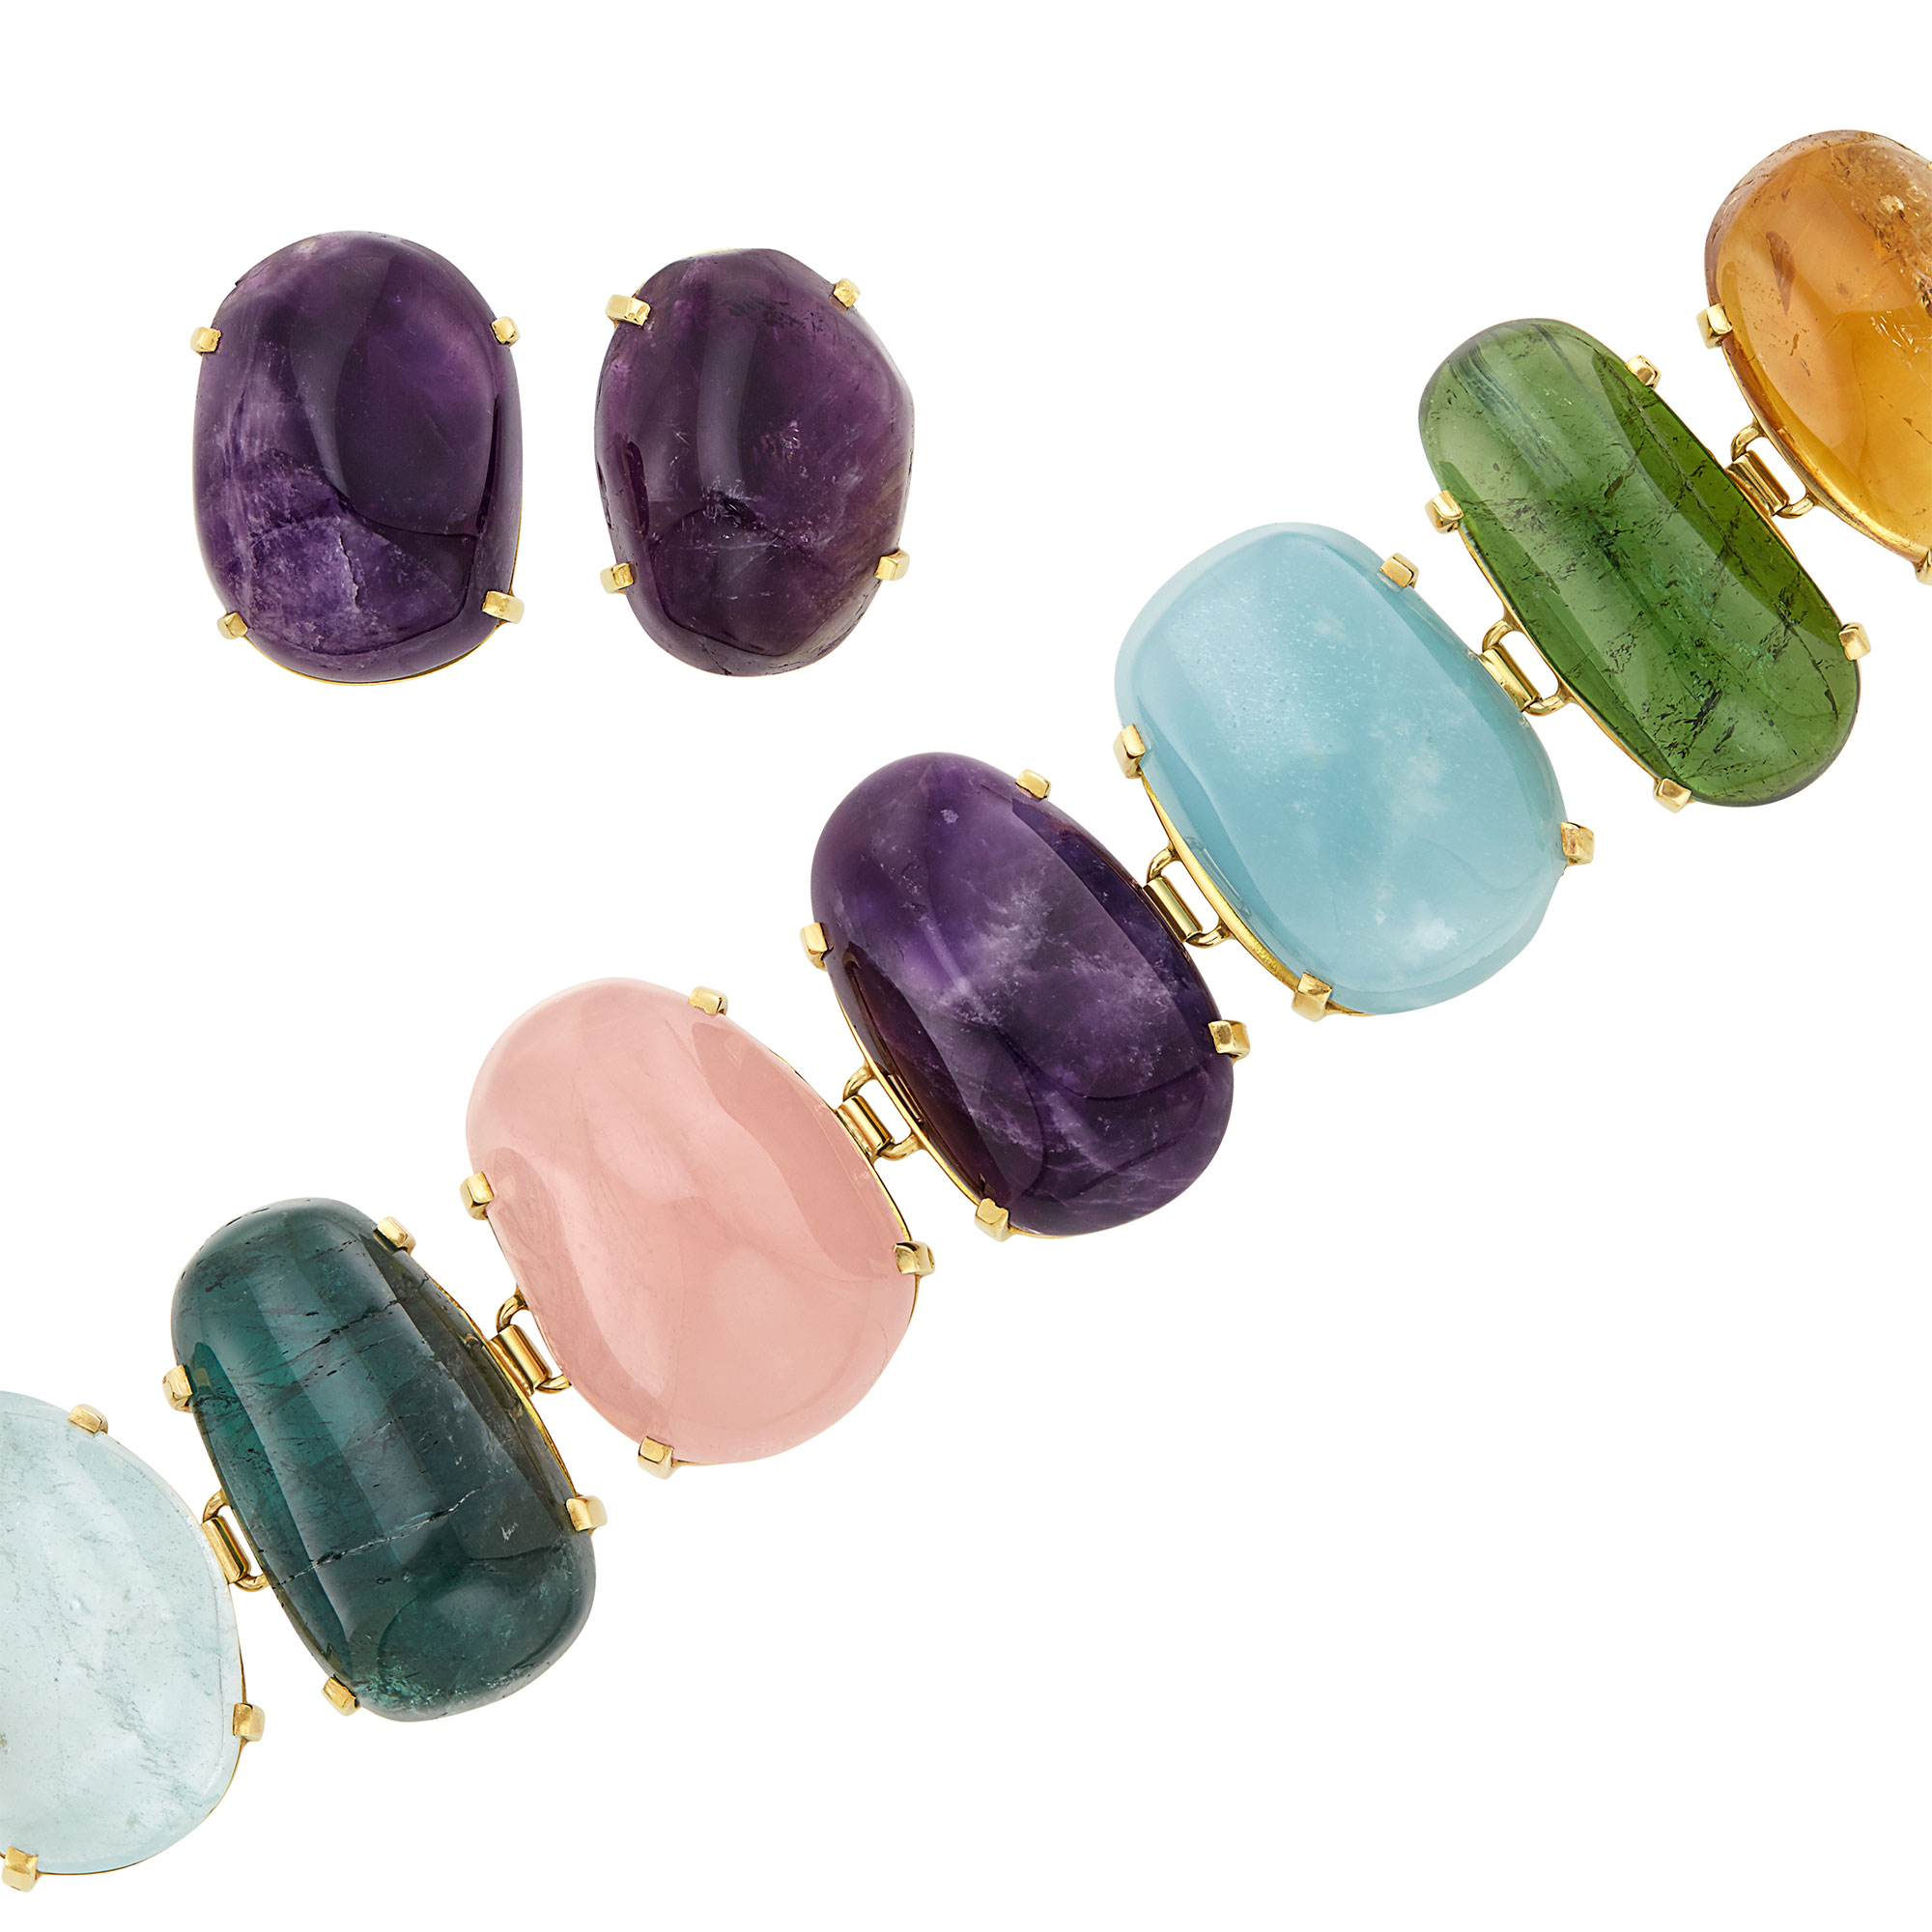 Lot image - Gold and Cabochon Colored Stone Bracelet and Pair of Cabochon Amethyst Earclips